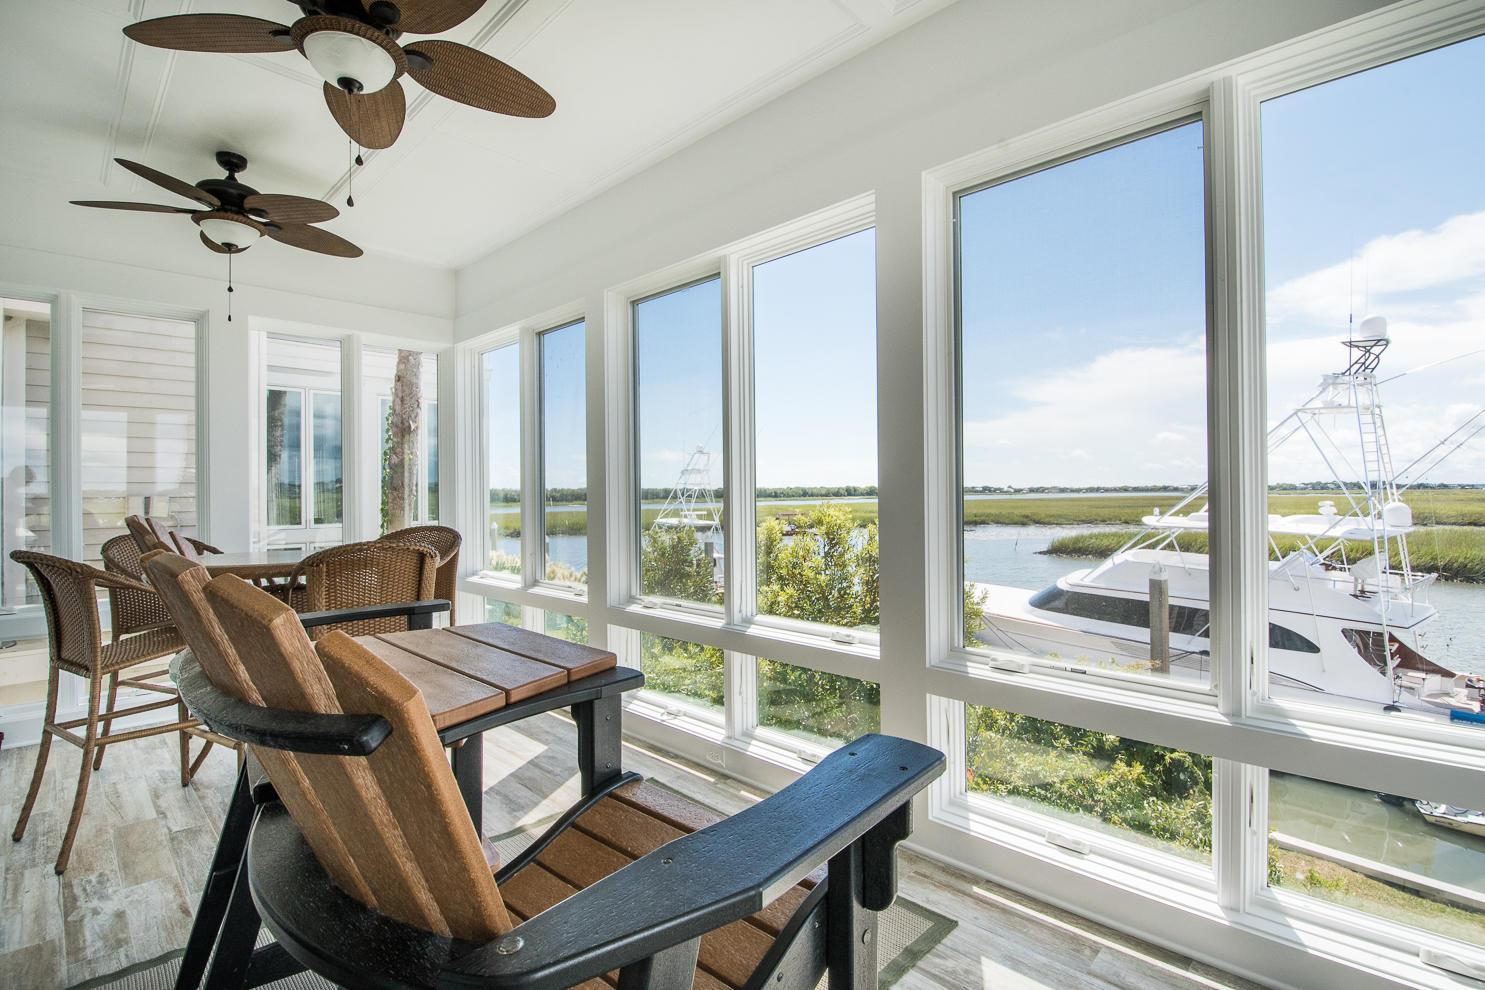 Tolers Cove Homes For Sale - B-4 & B-5 Tolers Cove Marina 70ft + Home, Mount Pleasant, SC - 27